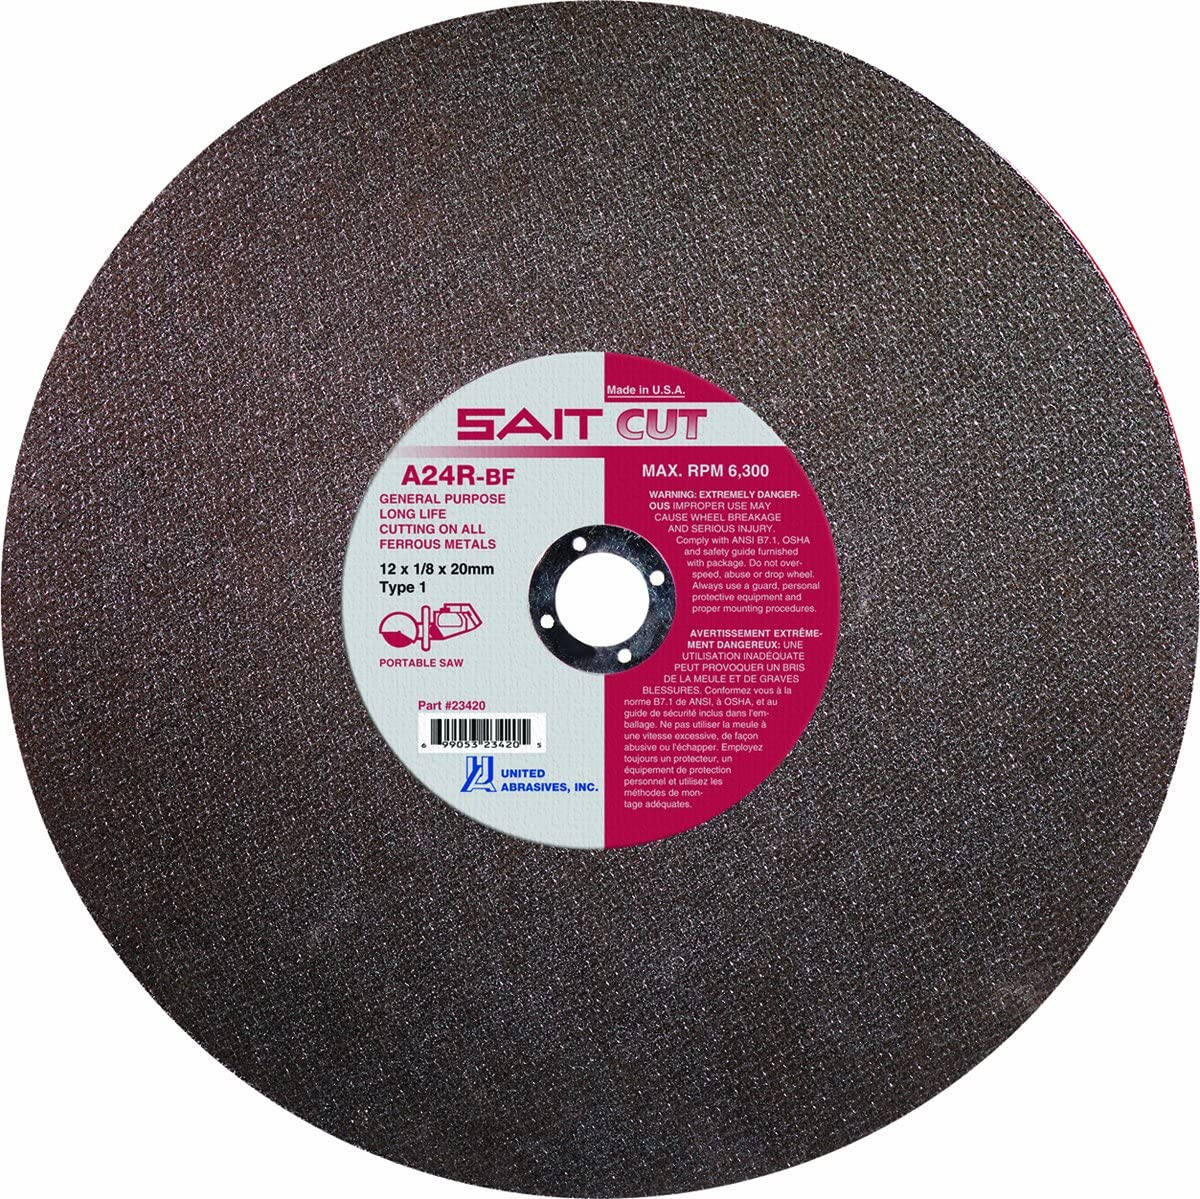 50 Pack United Abrasives-SAIT 34250-AE 5-Inch Hook and Loop 40X Disc